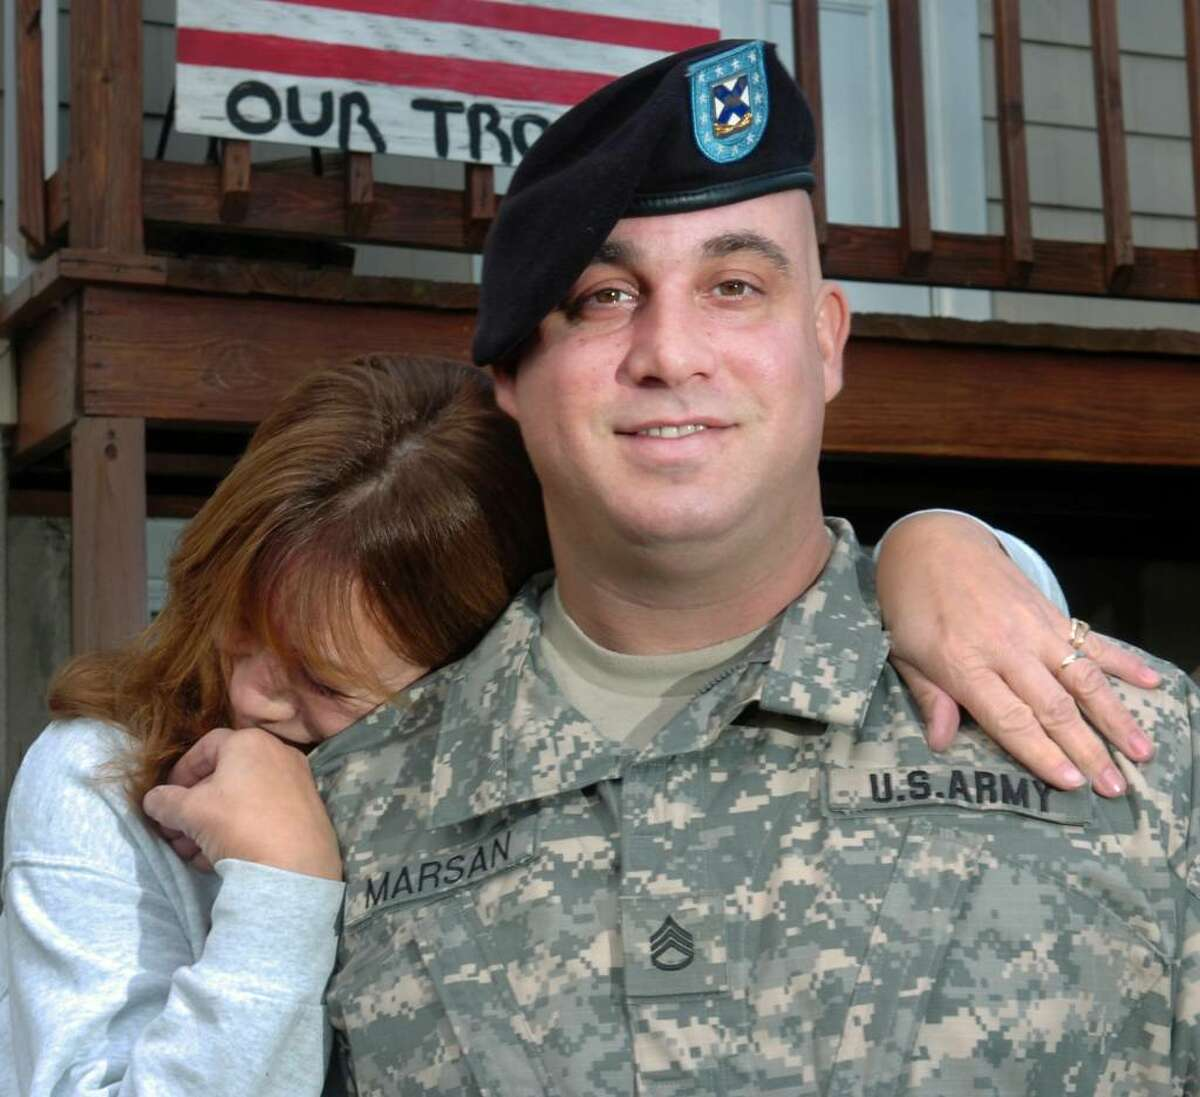 Staff Sgt. Nick Marson of the Connecticut Army National Guard gets a hug from his mother, Debbie, in front on their faimily home in Fairfield, Conn. on Nov. 6th, 2009. Marsan will deploy to Afghanistan with the 102nd Infintry later this month.